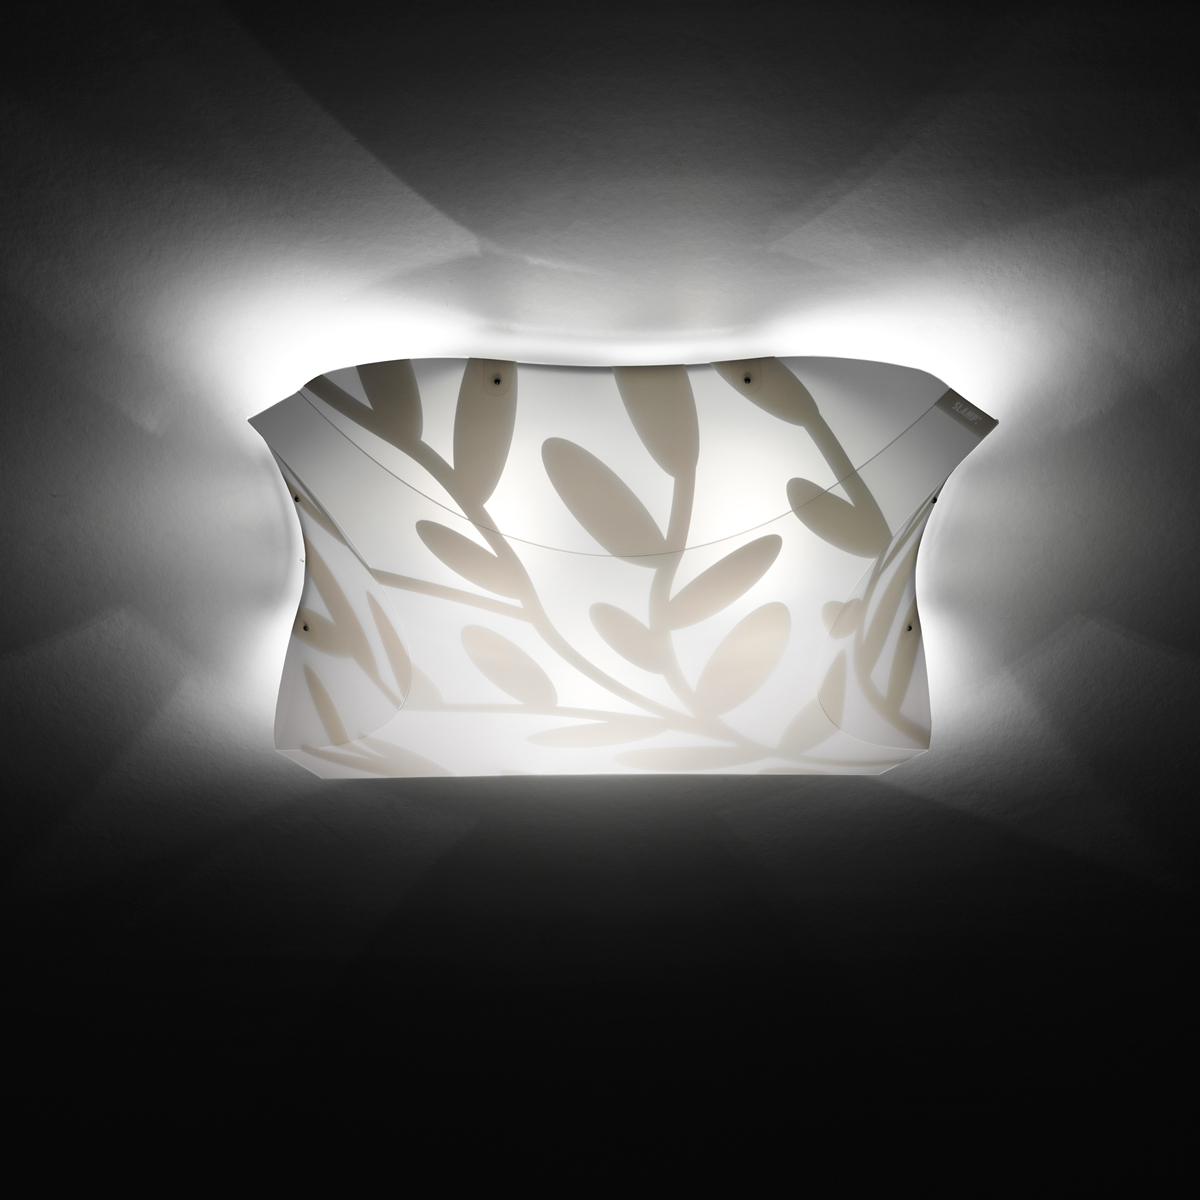 Dafne Plana Small Wall Lamp